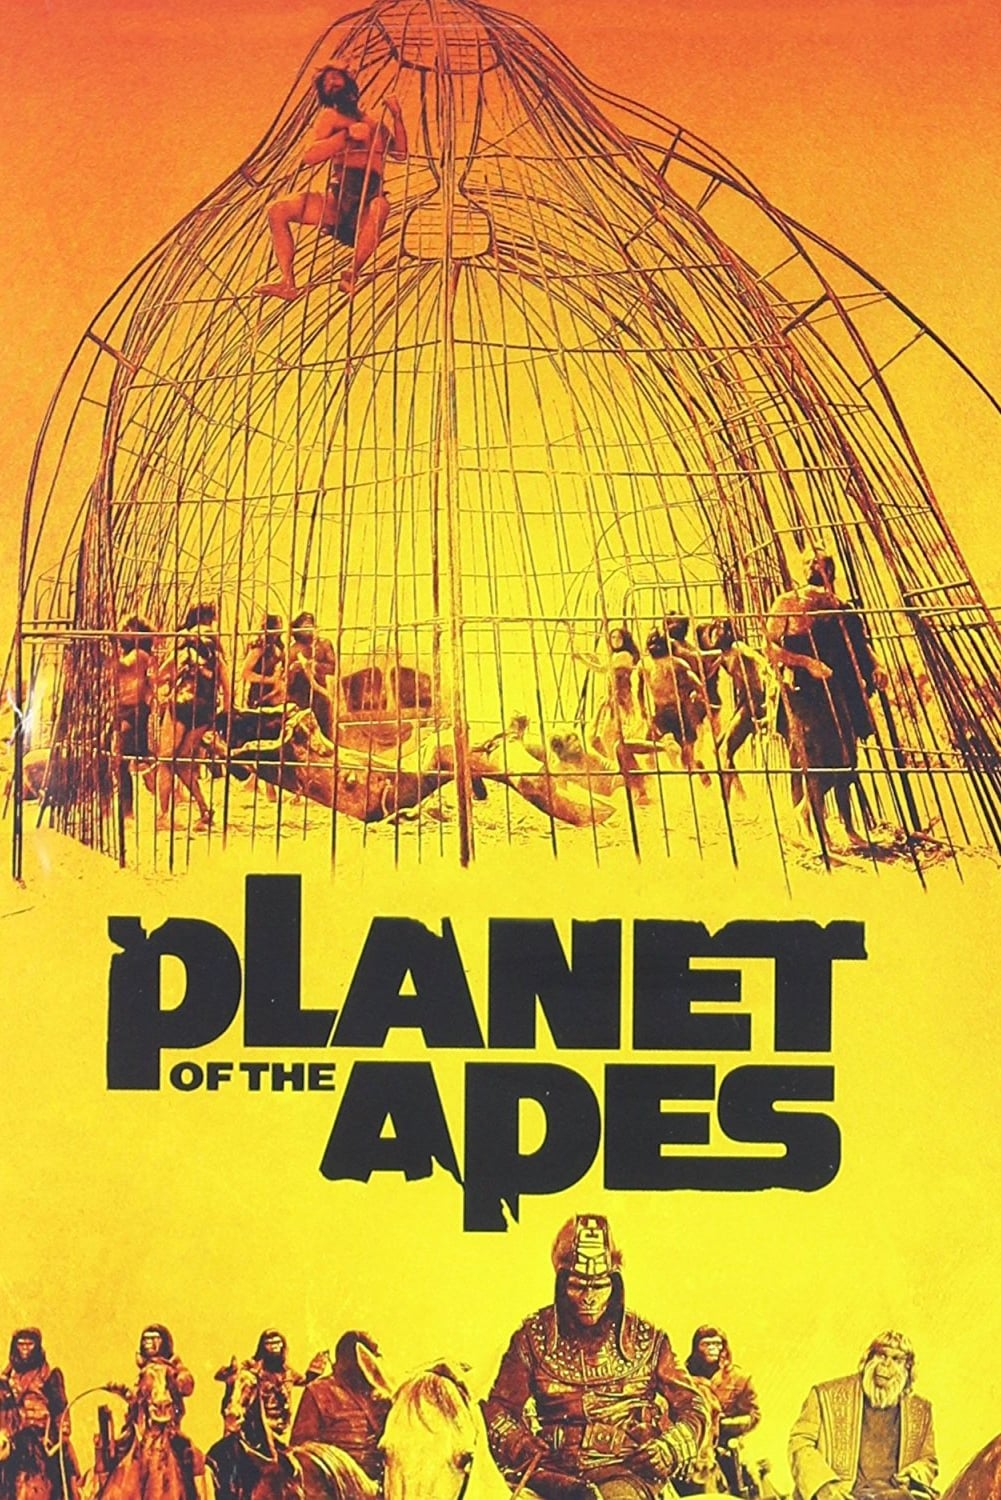 Image Planet of the Apes